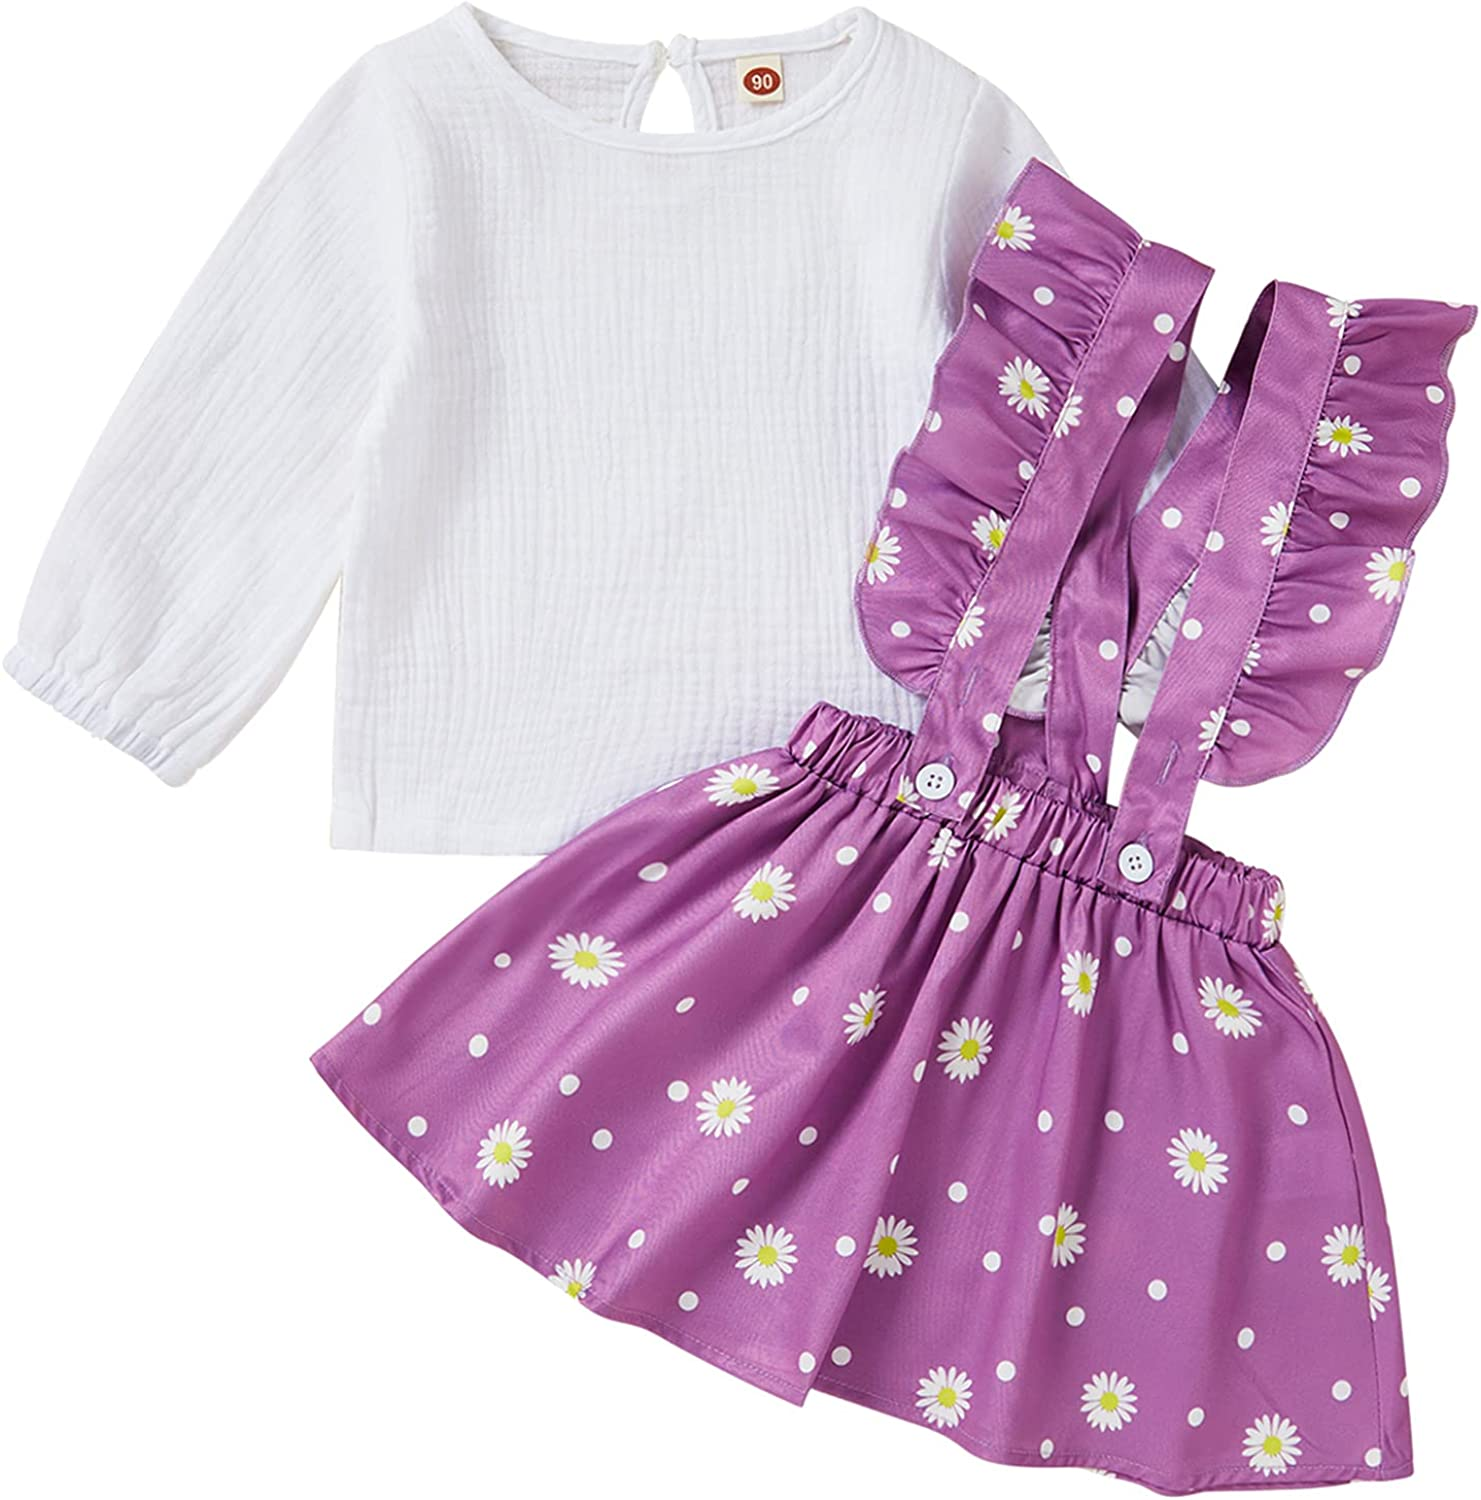 Toddler Baby Girl Clothes Long Sleeve Linen Shirt Top Floral Ruffle Suspender Skirts Autumn Outfits